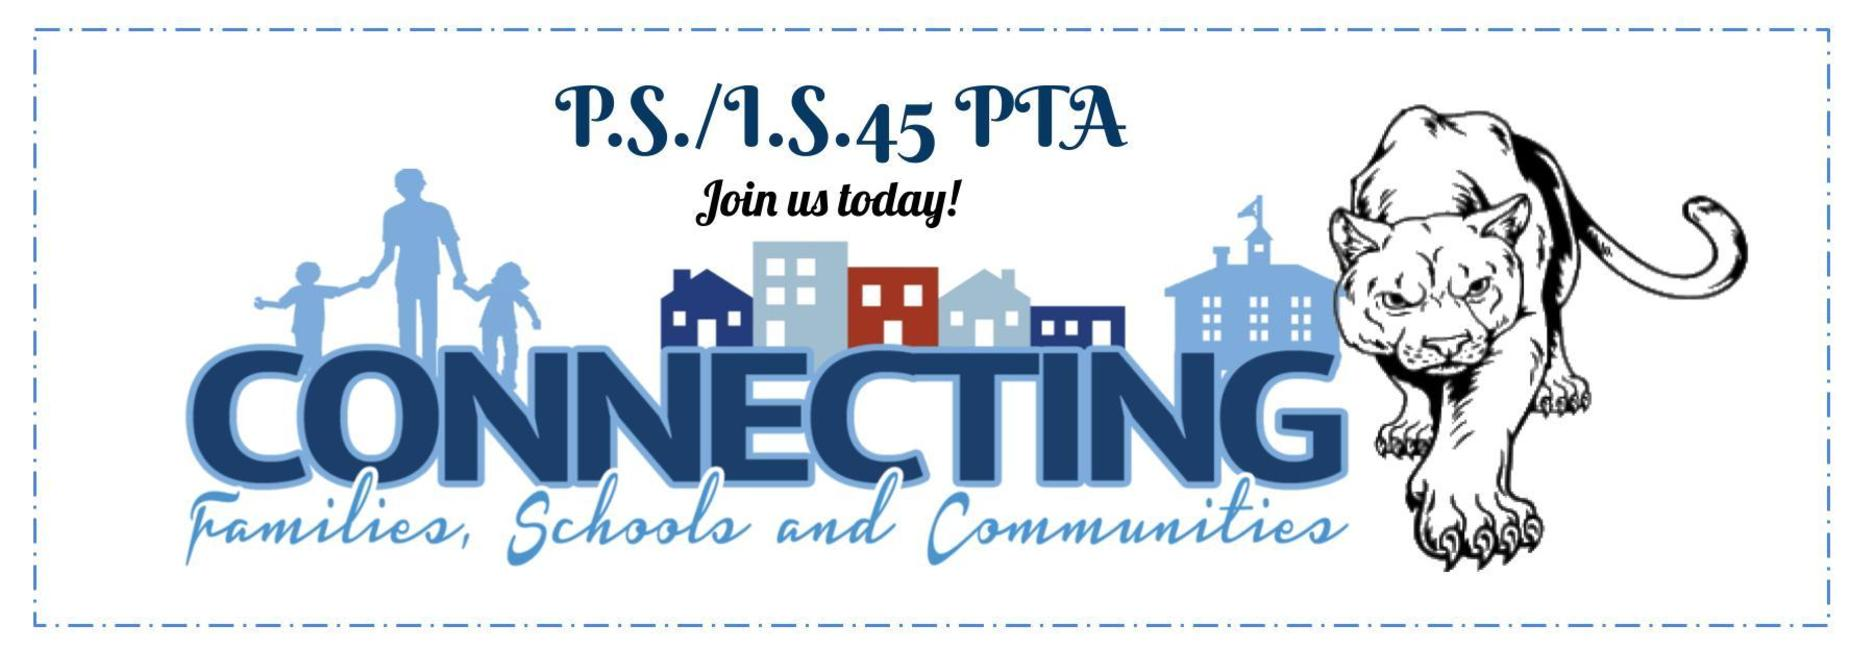 Join the P.S./I.S. 45 PTA today! Connecting families, schools, and communities.